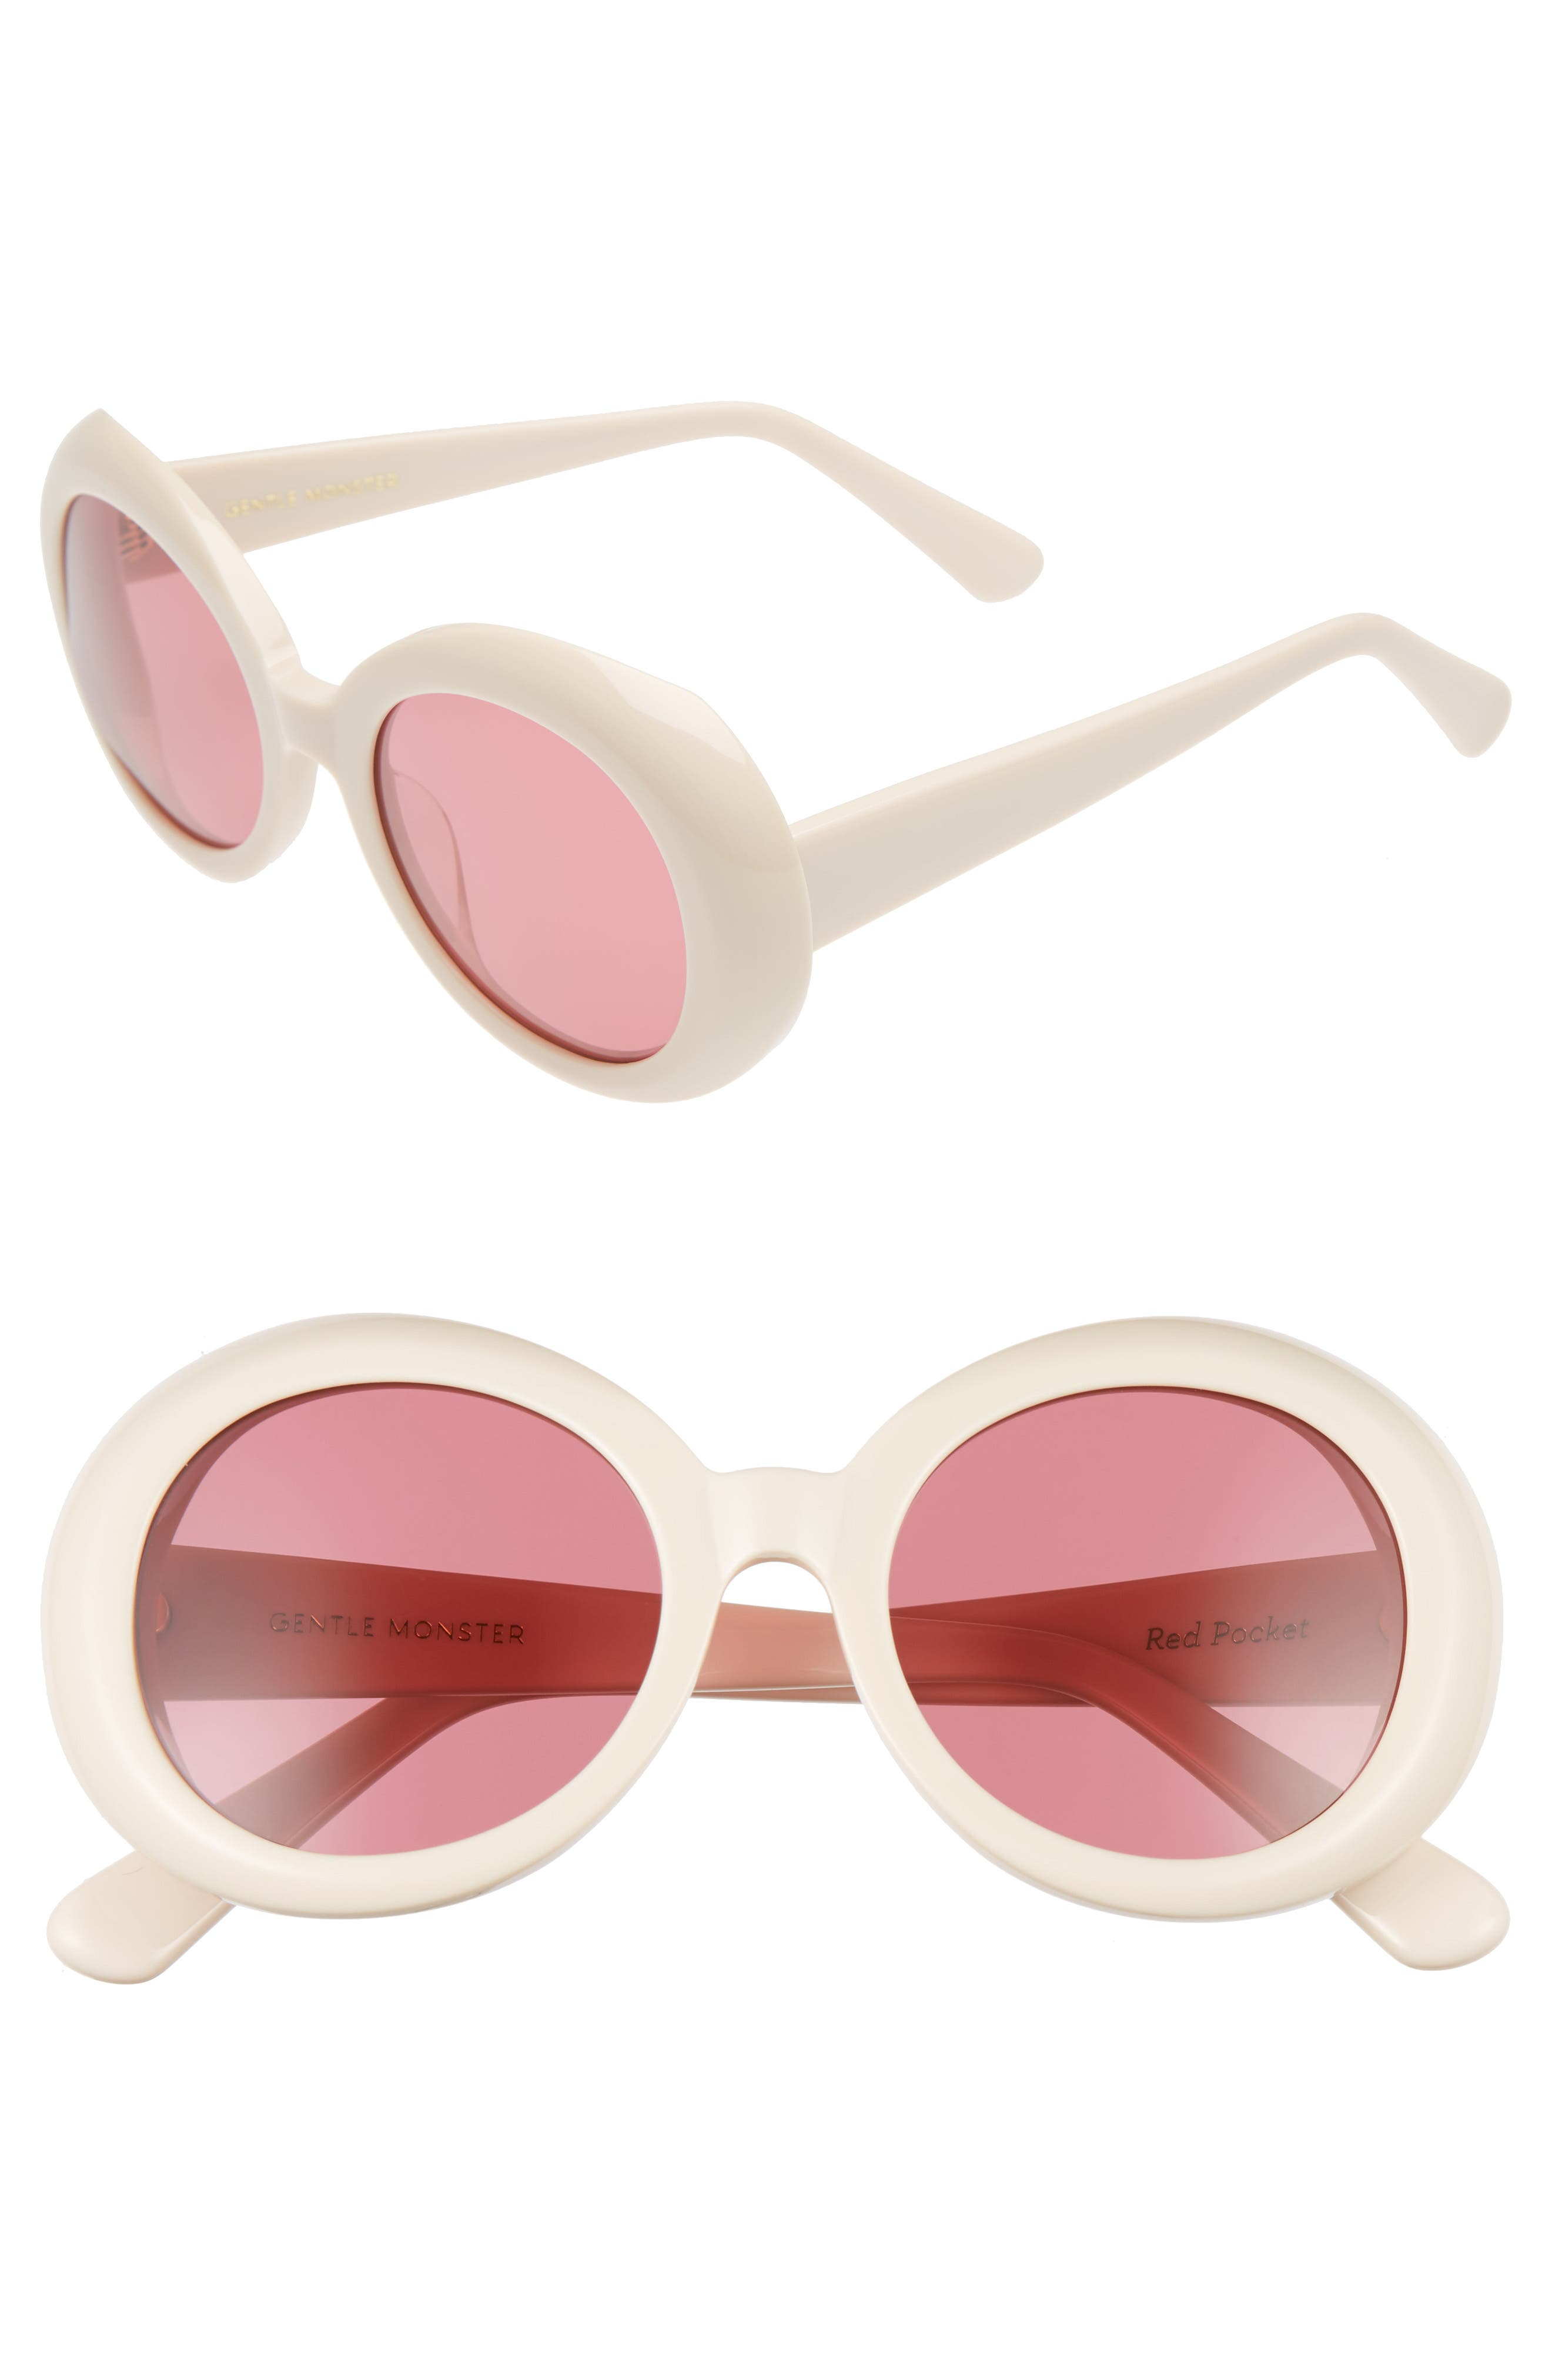 Main Image - Gentle Monster Red Pocket 52mm Round Sunglasses